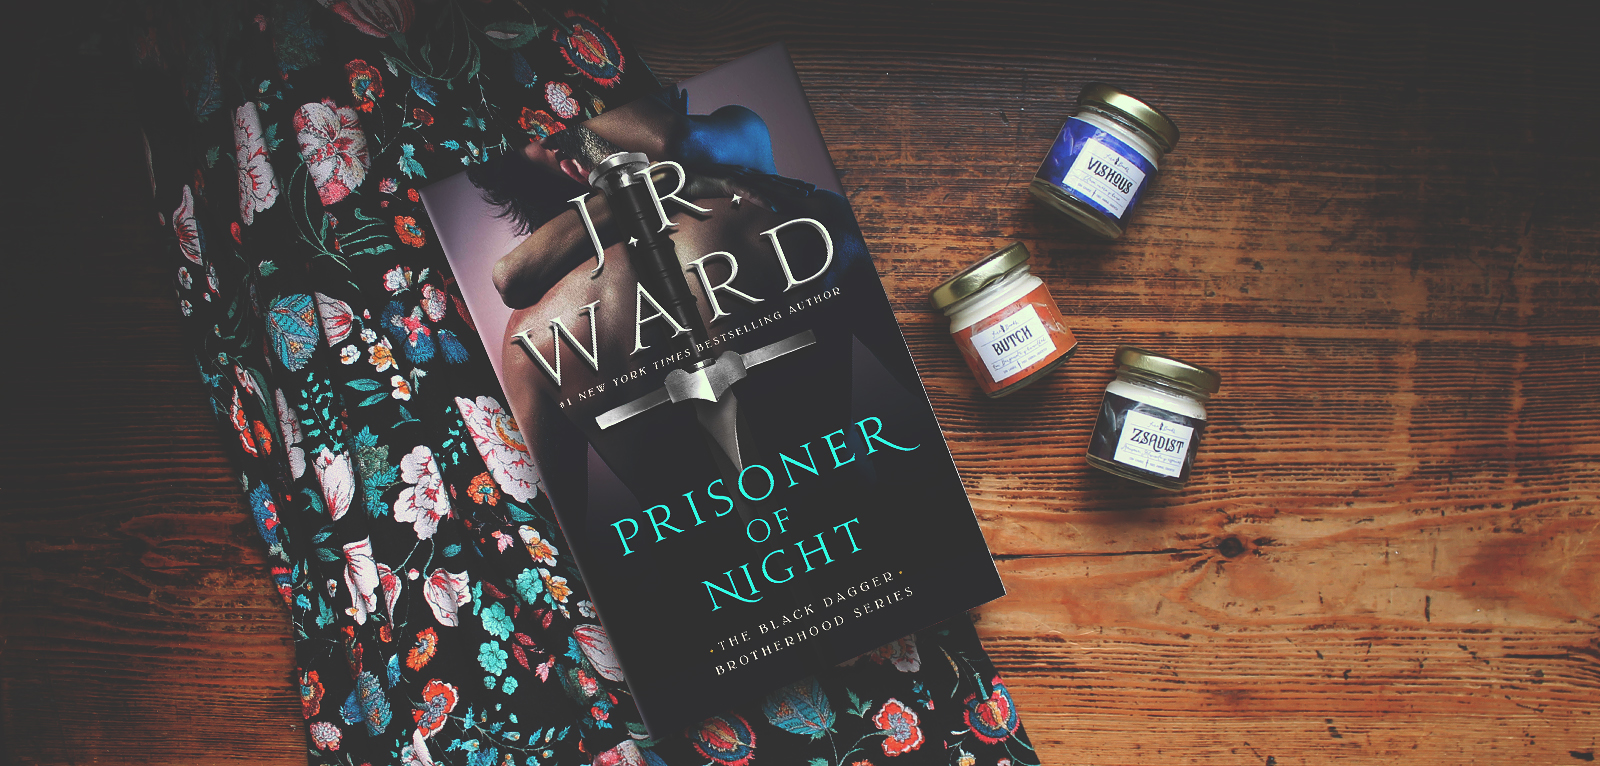 Prisoner of night · J.R.Ward